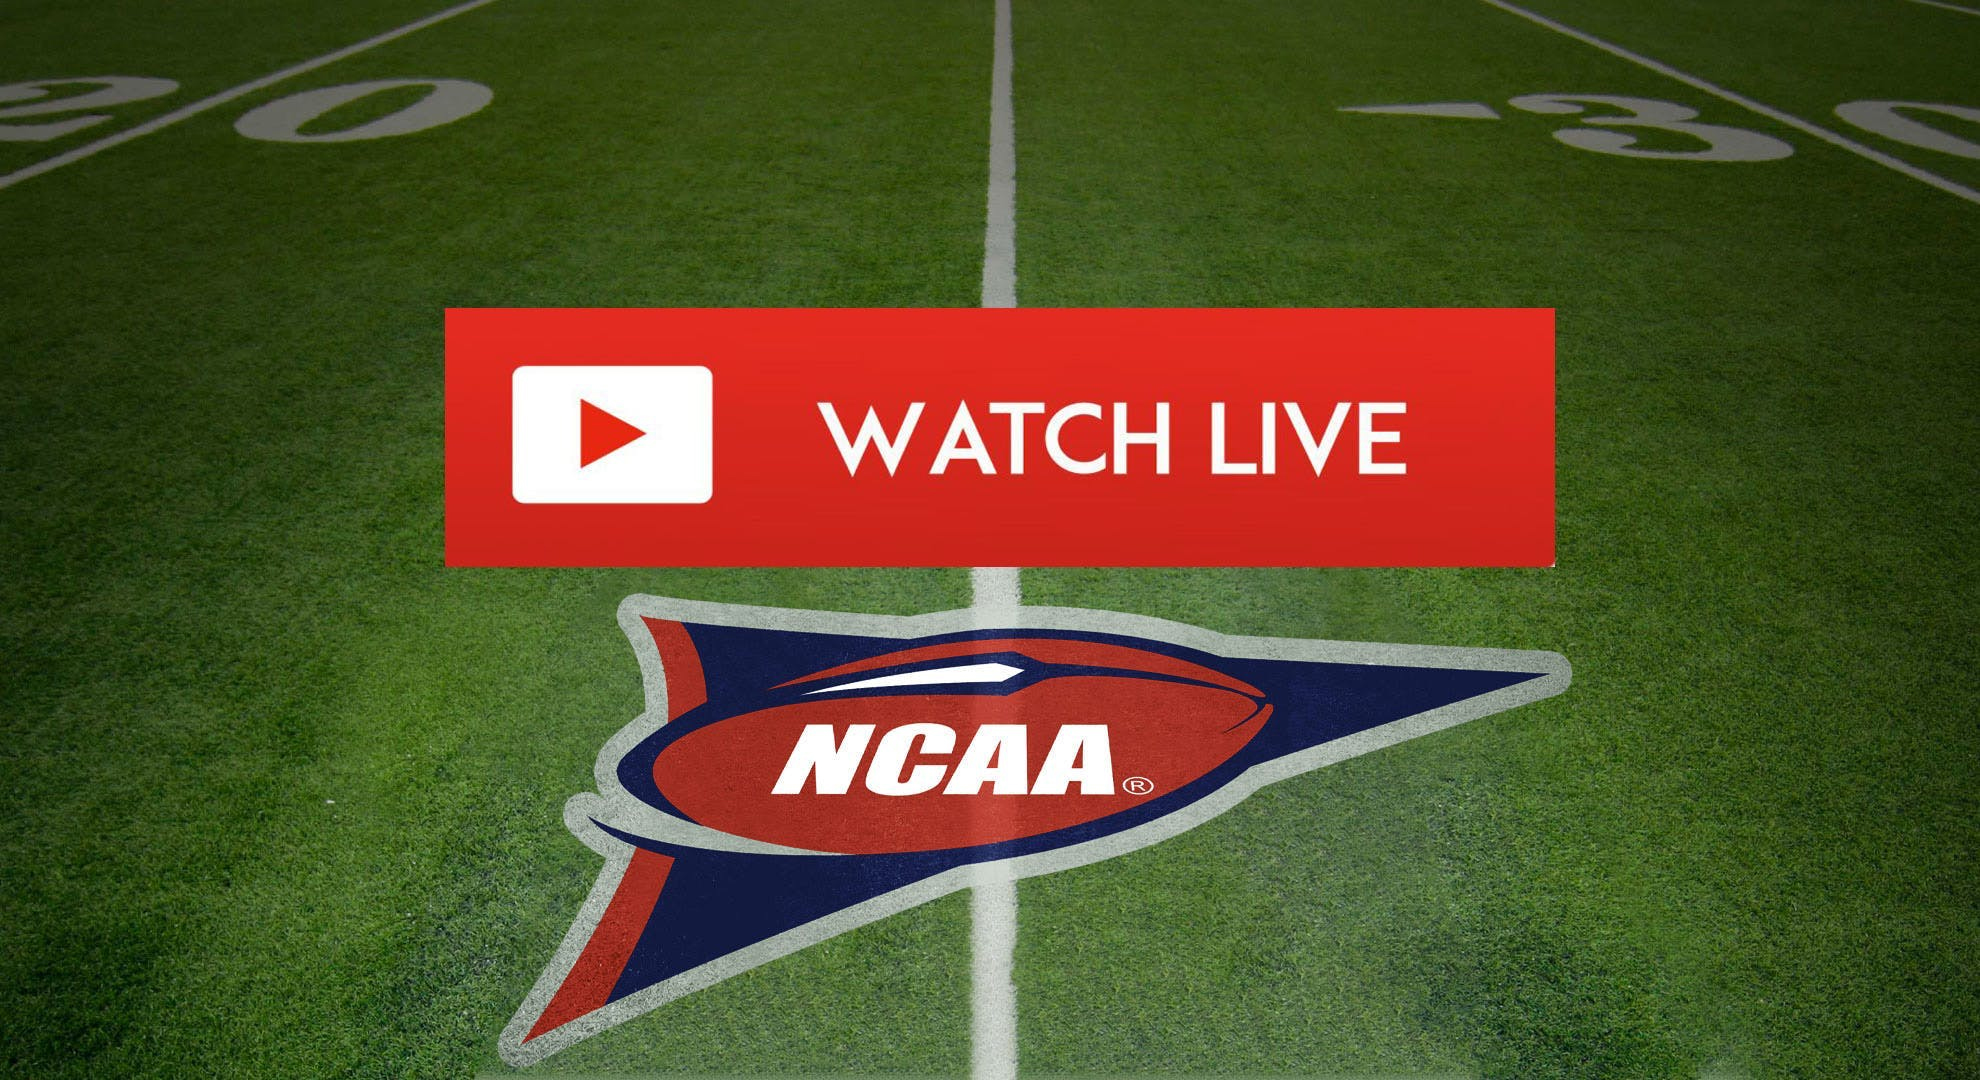 WATCH Ohio State vs Indiana Live Stream NCAA College Football Game 2021 Online Free TV Channel at Tantara in San Francisco - October 23, 2021 | SF Station